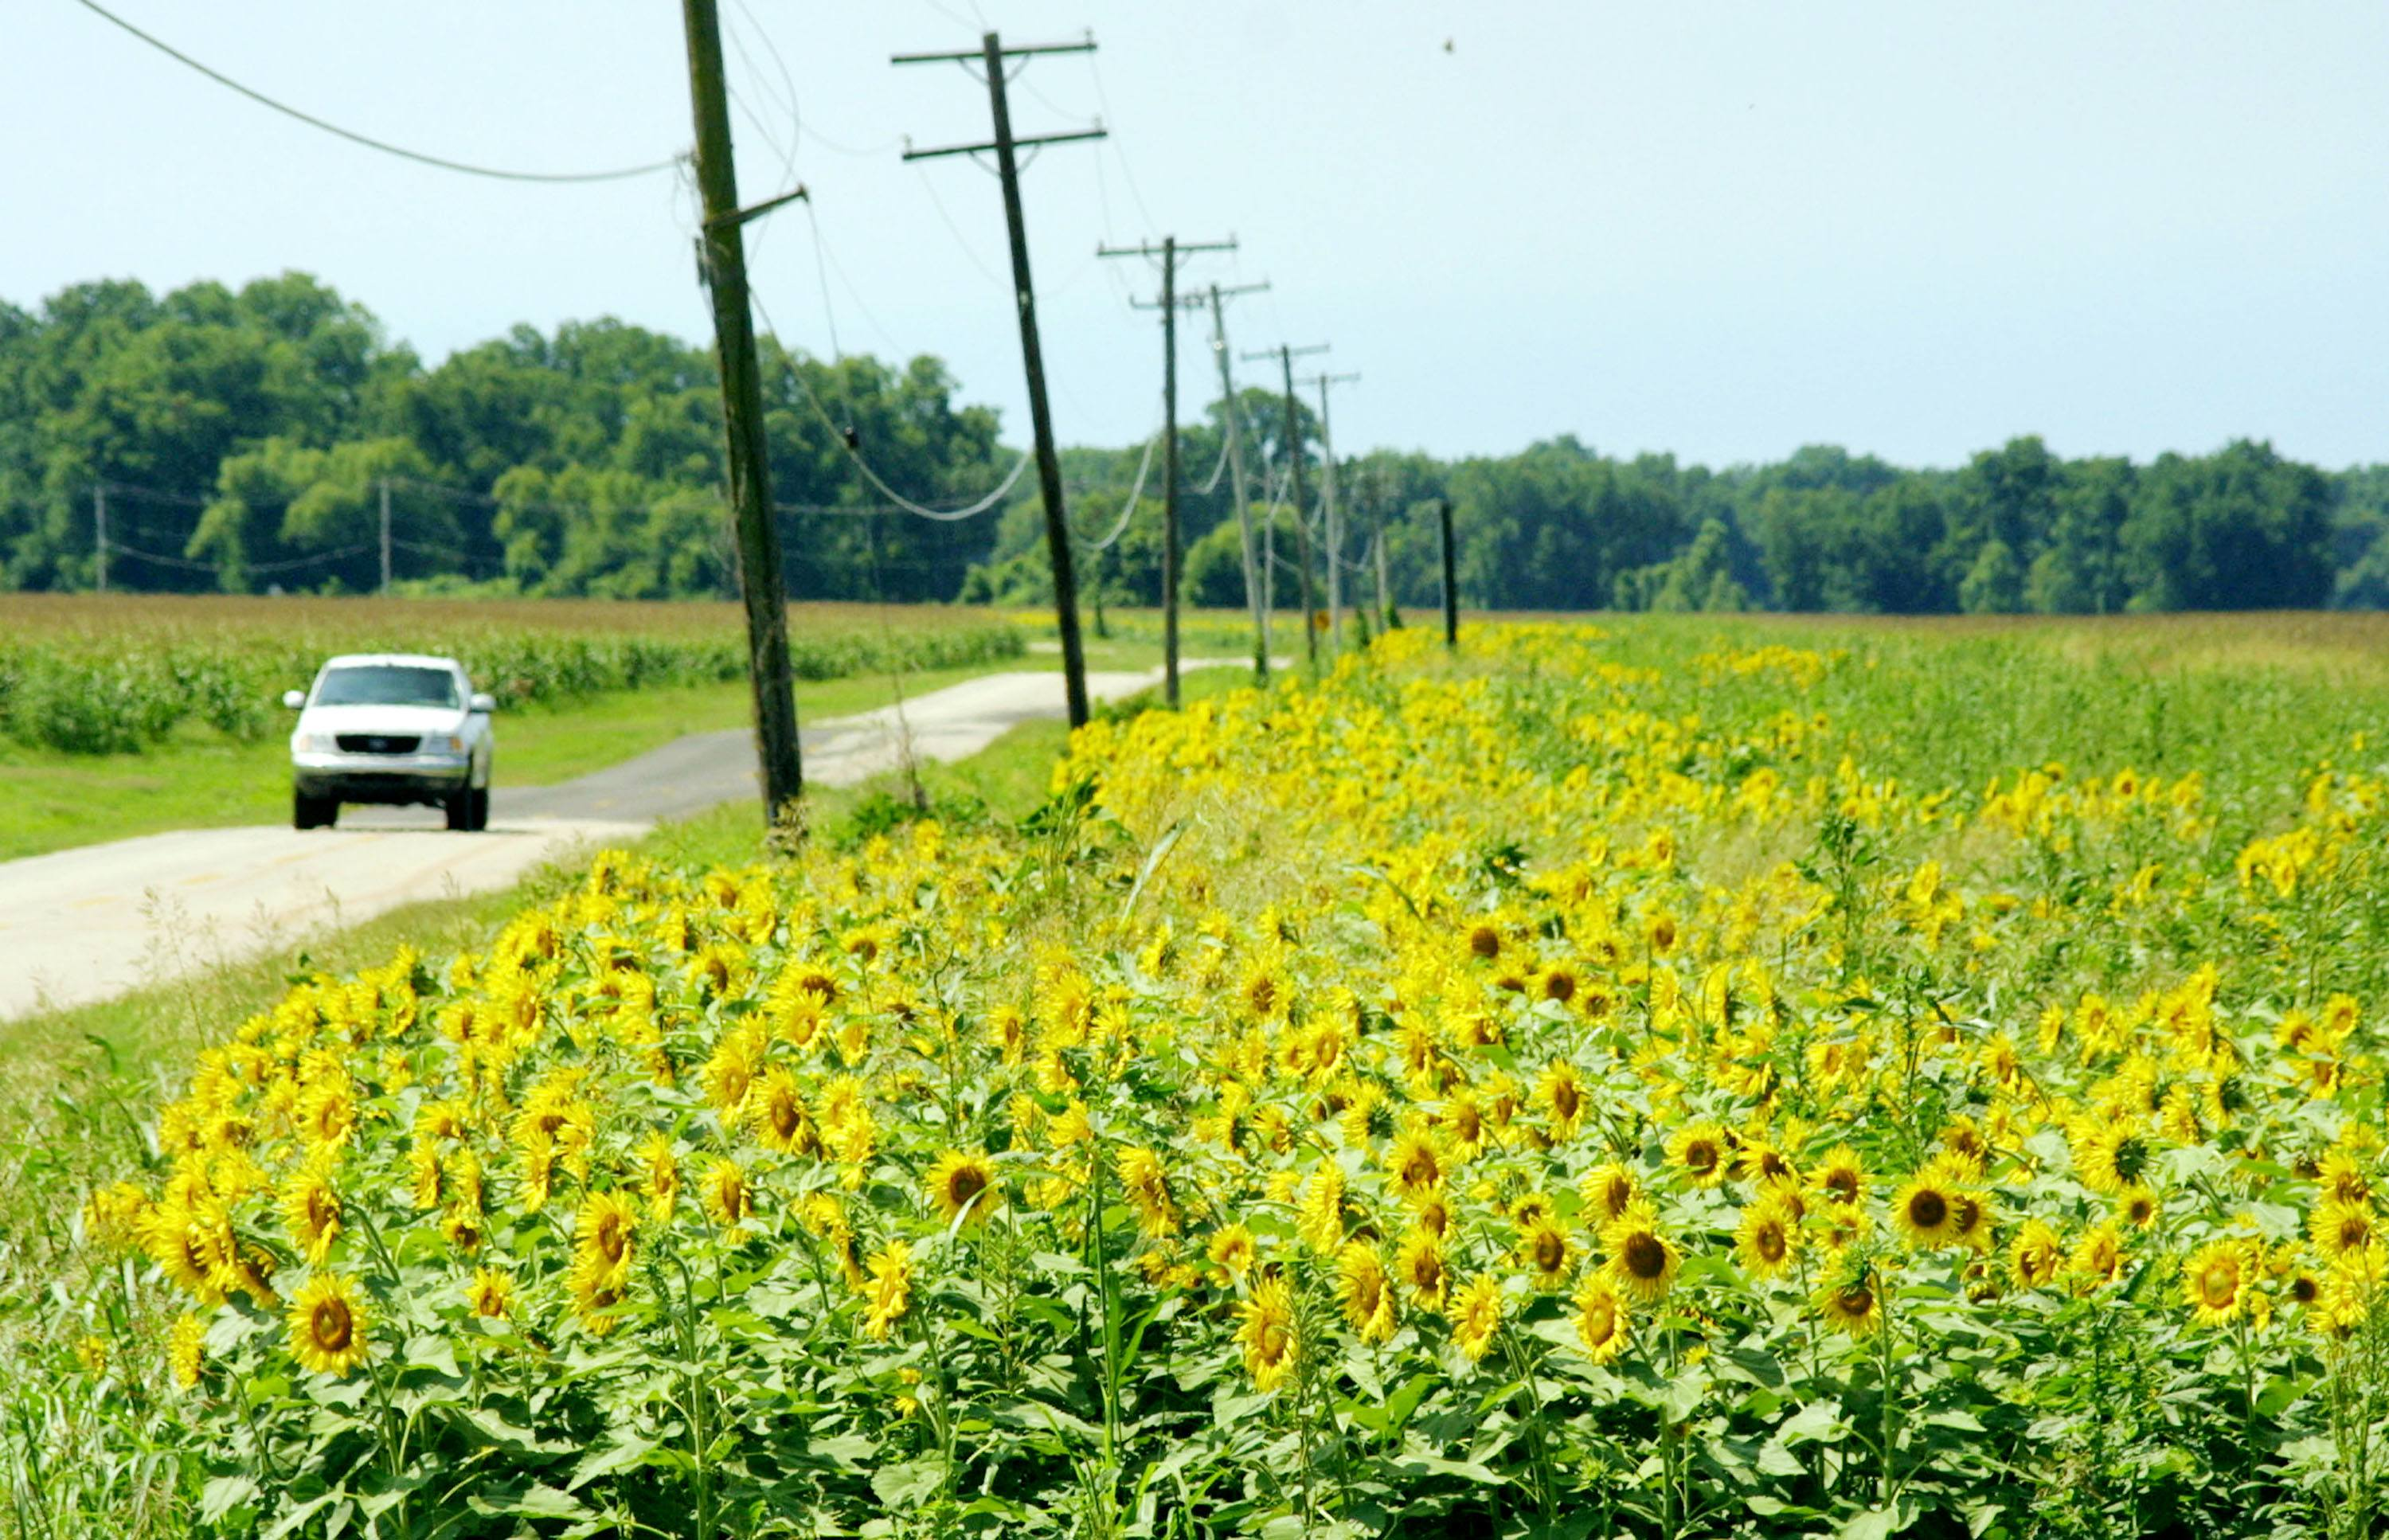 Thousands of sunflowers line a country road north of Shreveport, Louisiana